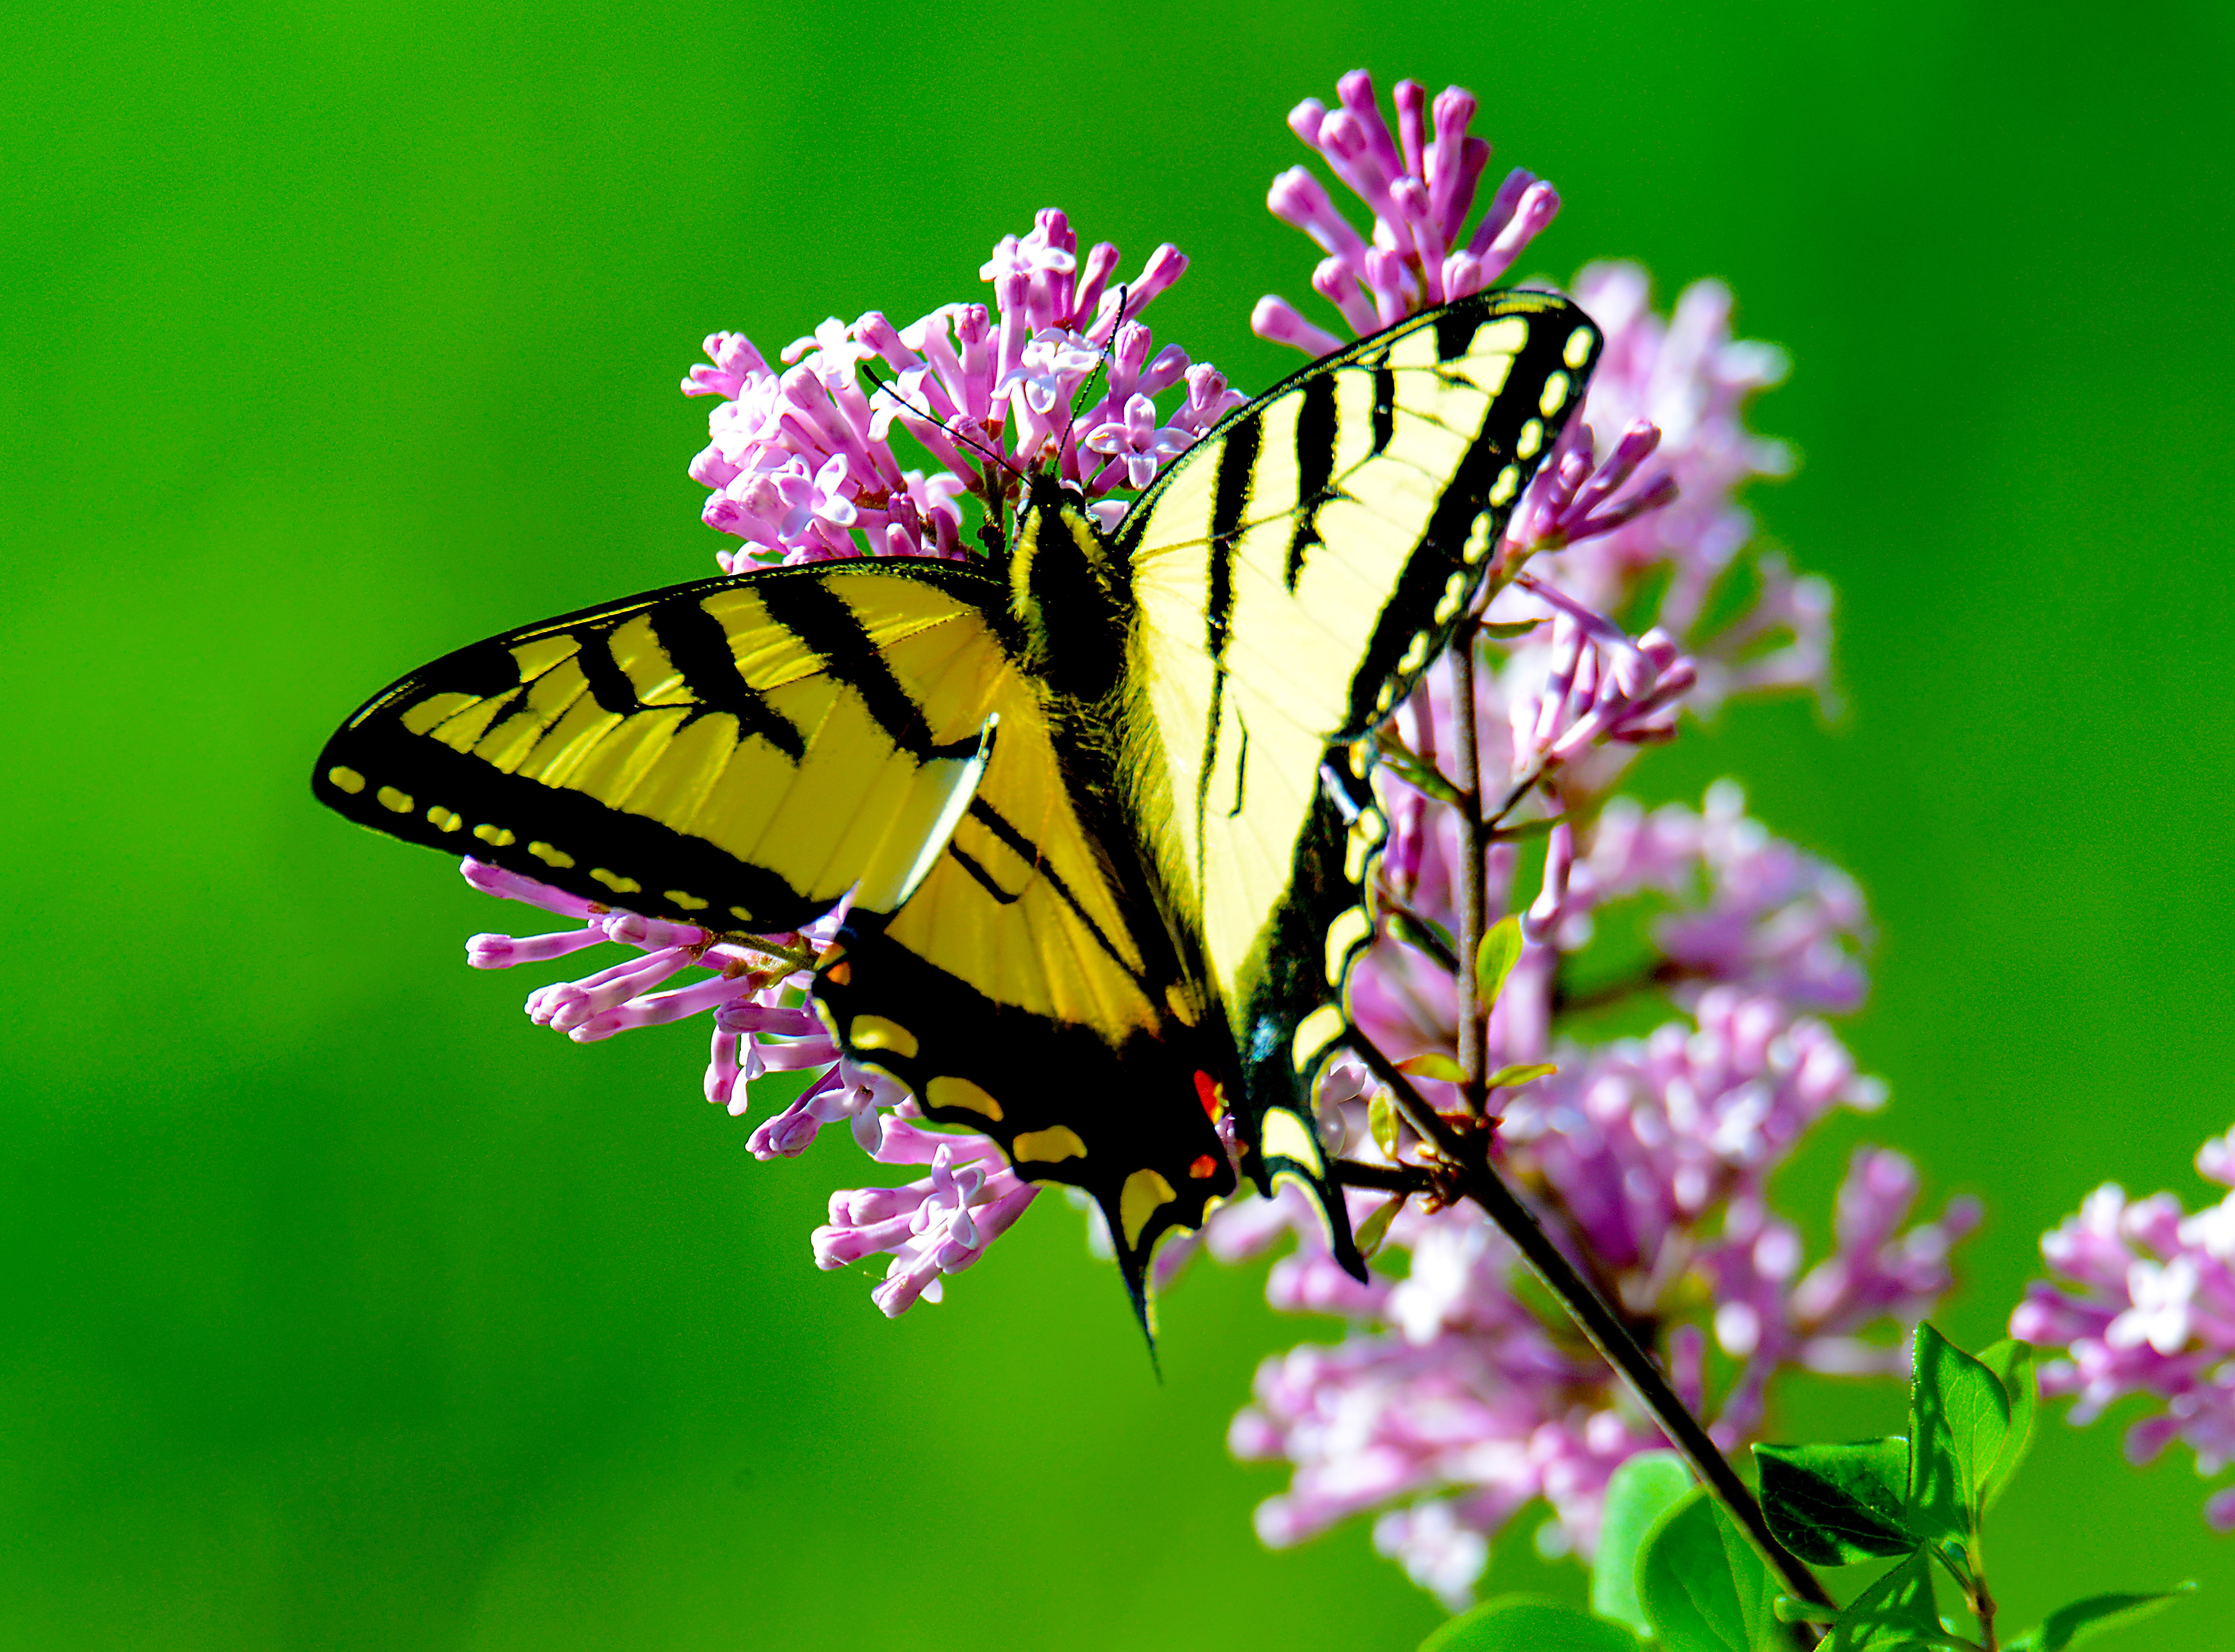 Yellow and black butterfly landing on pink flower with green background in Spring